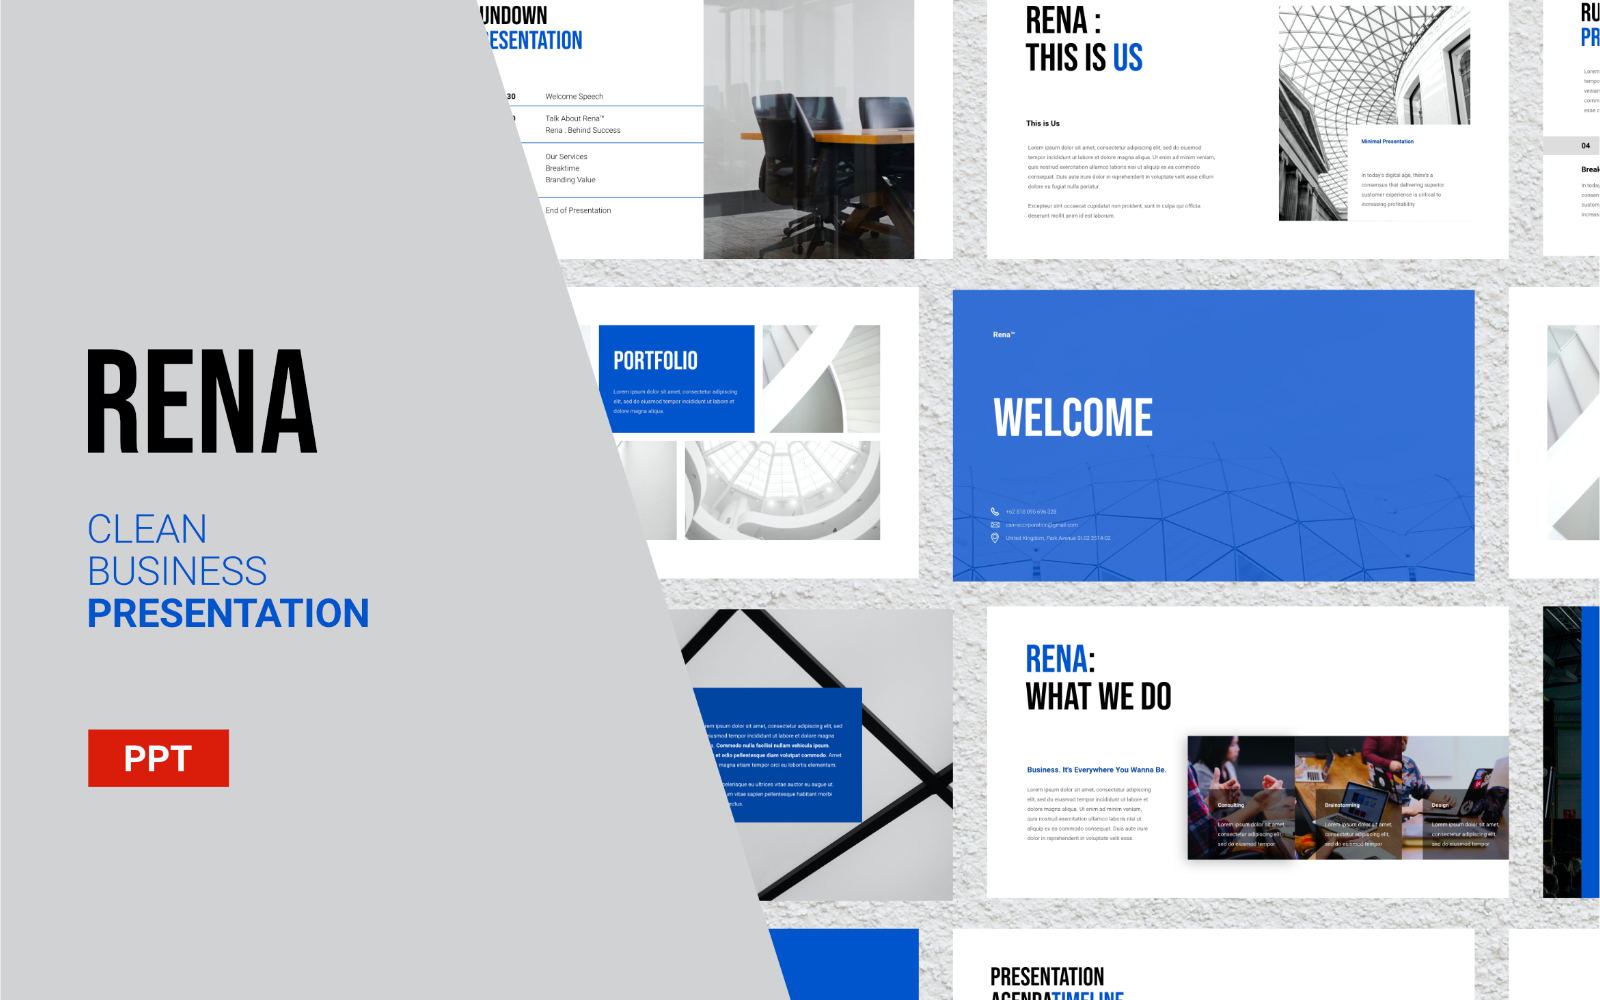 Rena - Clean Business Presentation - Powerpoint Template